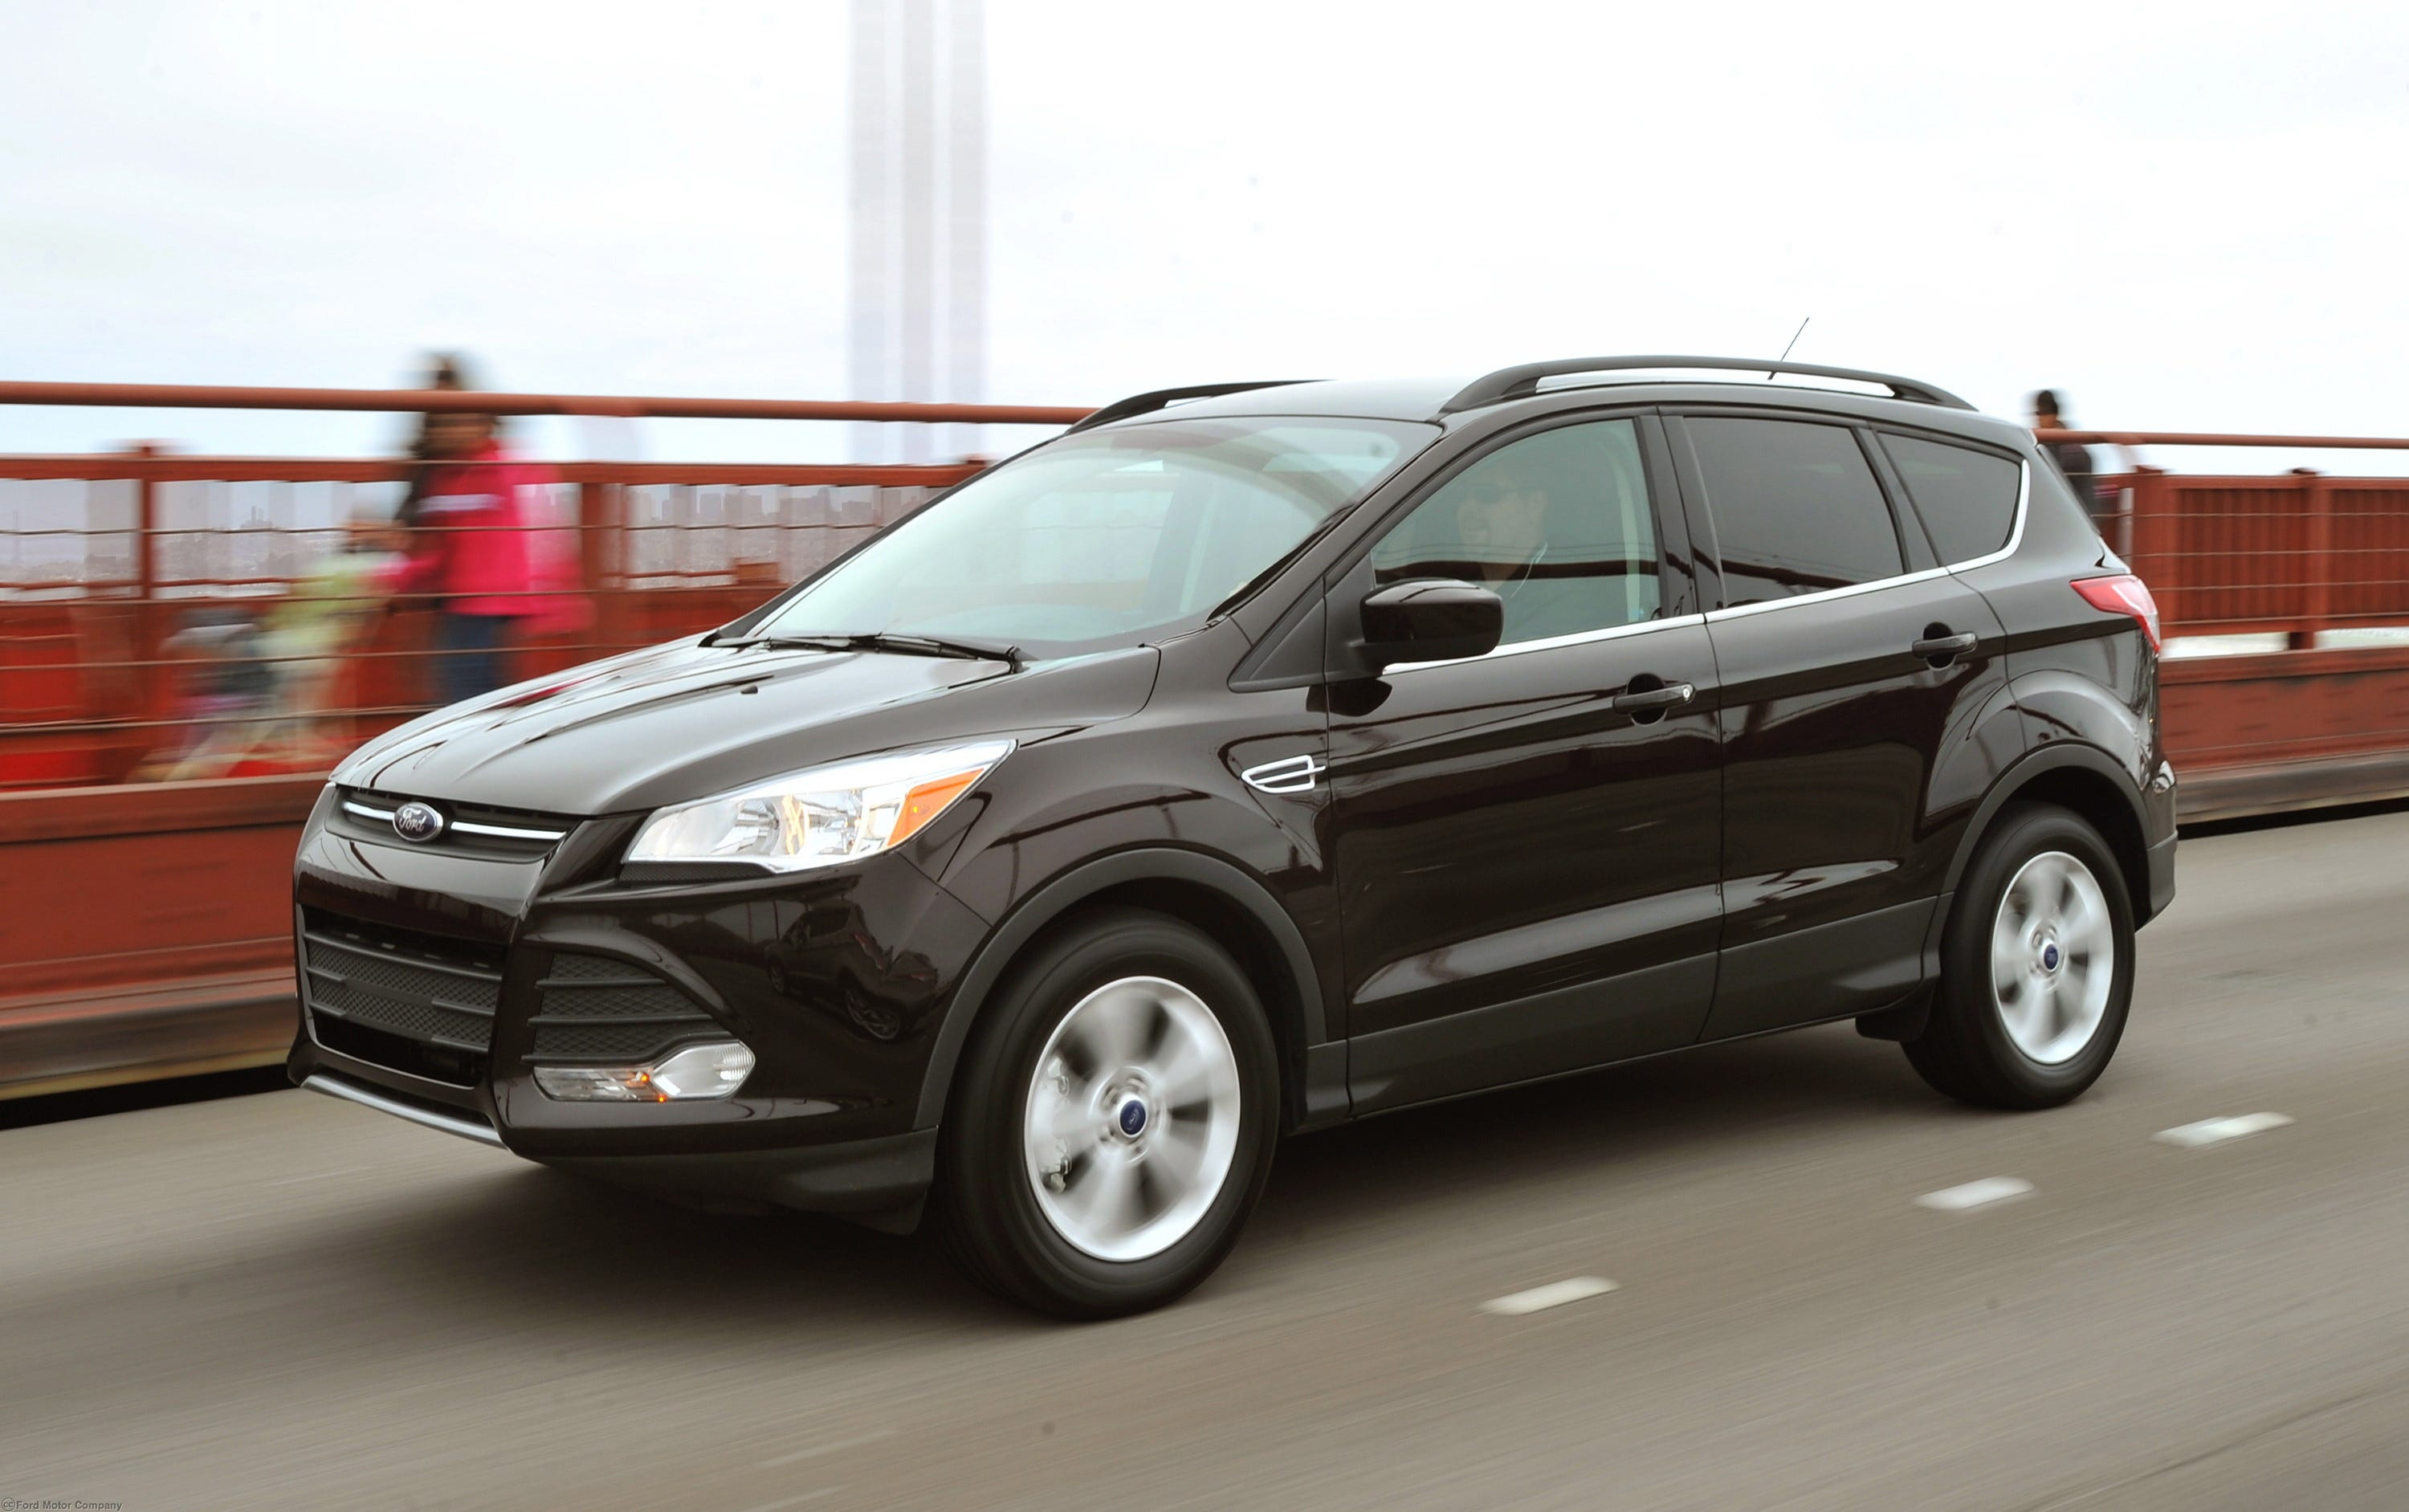 1408138022000 13Escape 2694 ford recalls 160,000 focus sts, escapes ford escape wiring harness recall at crackthecode.co